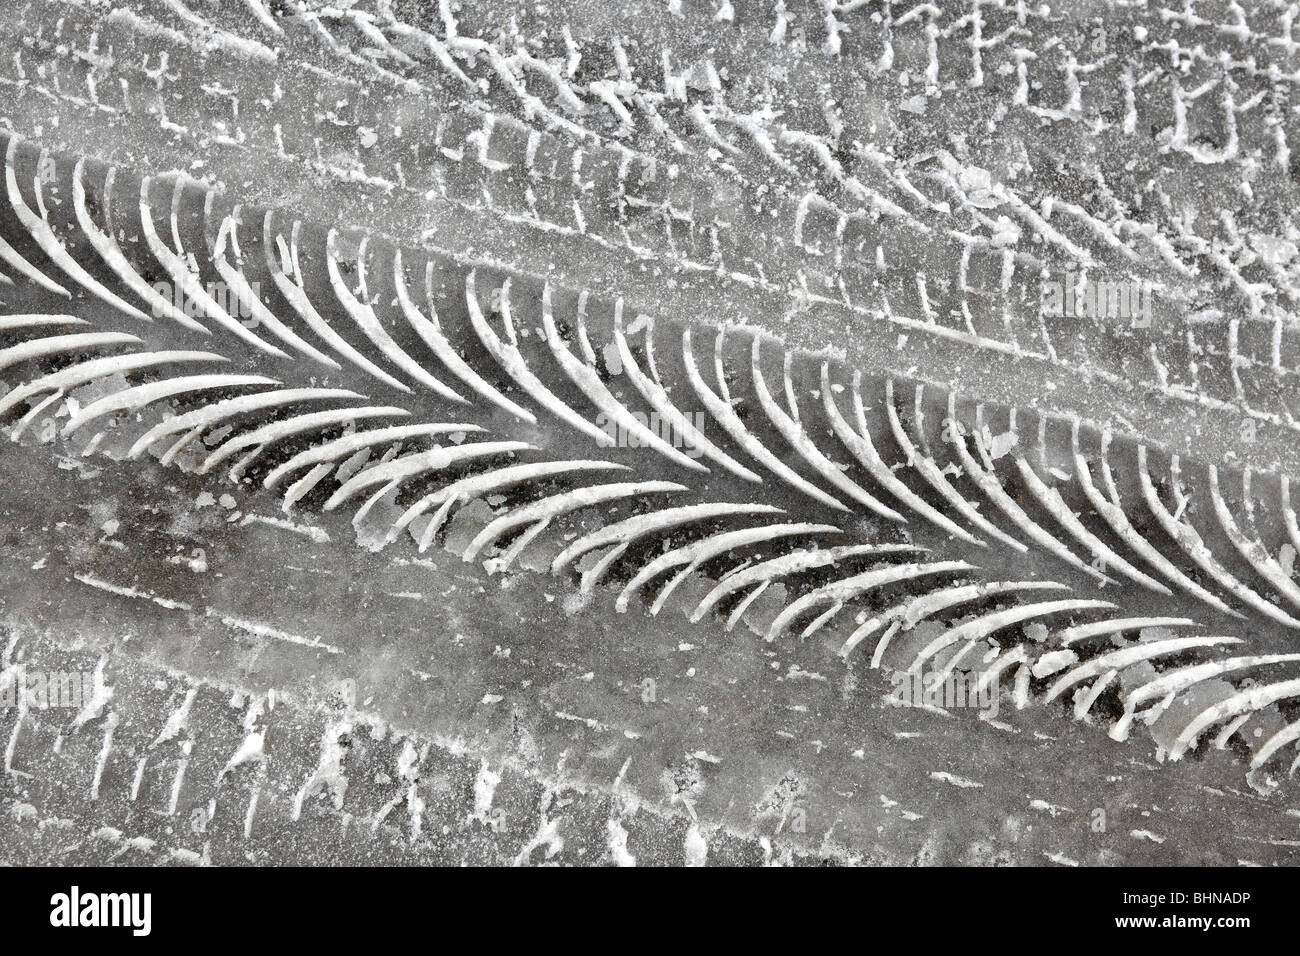 Tyre tracks in ice. - Stock Image